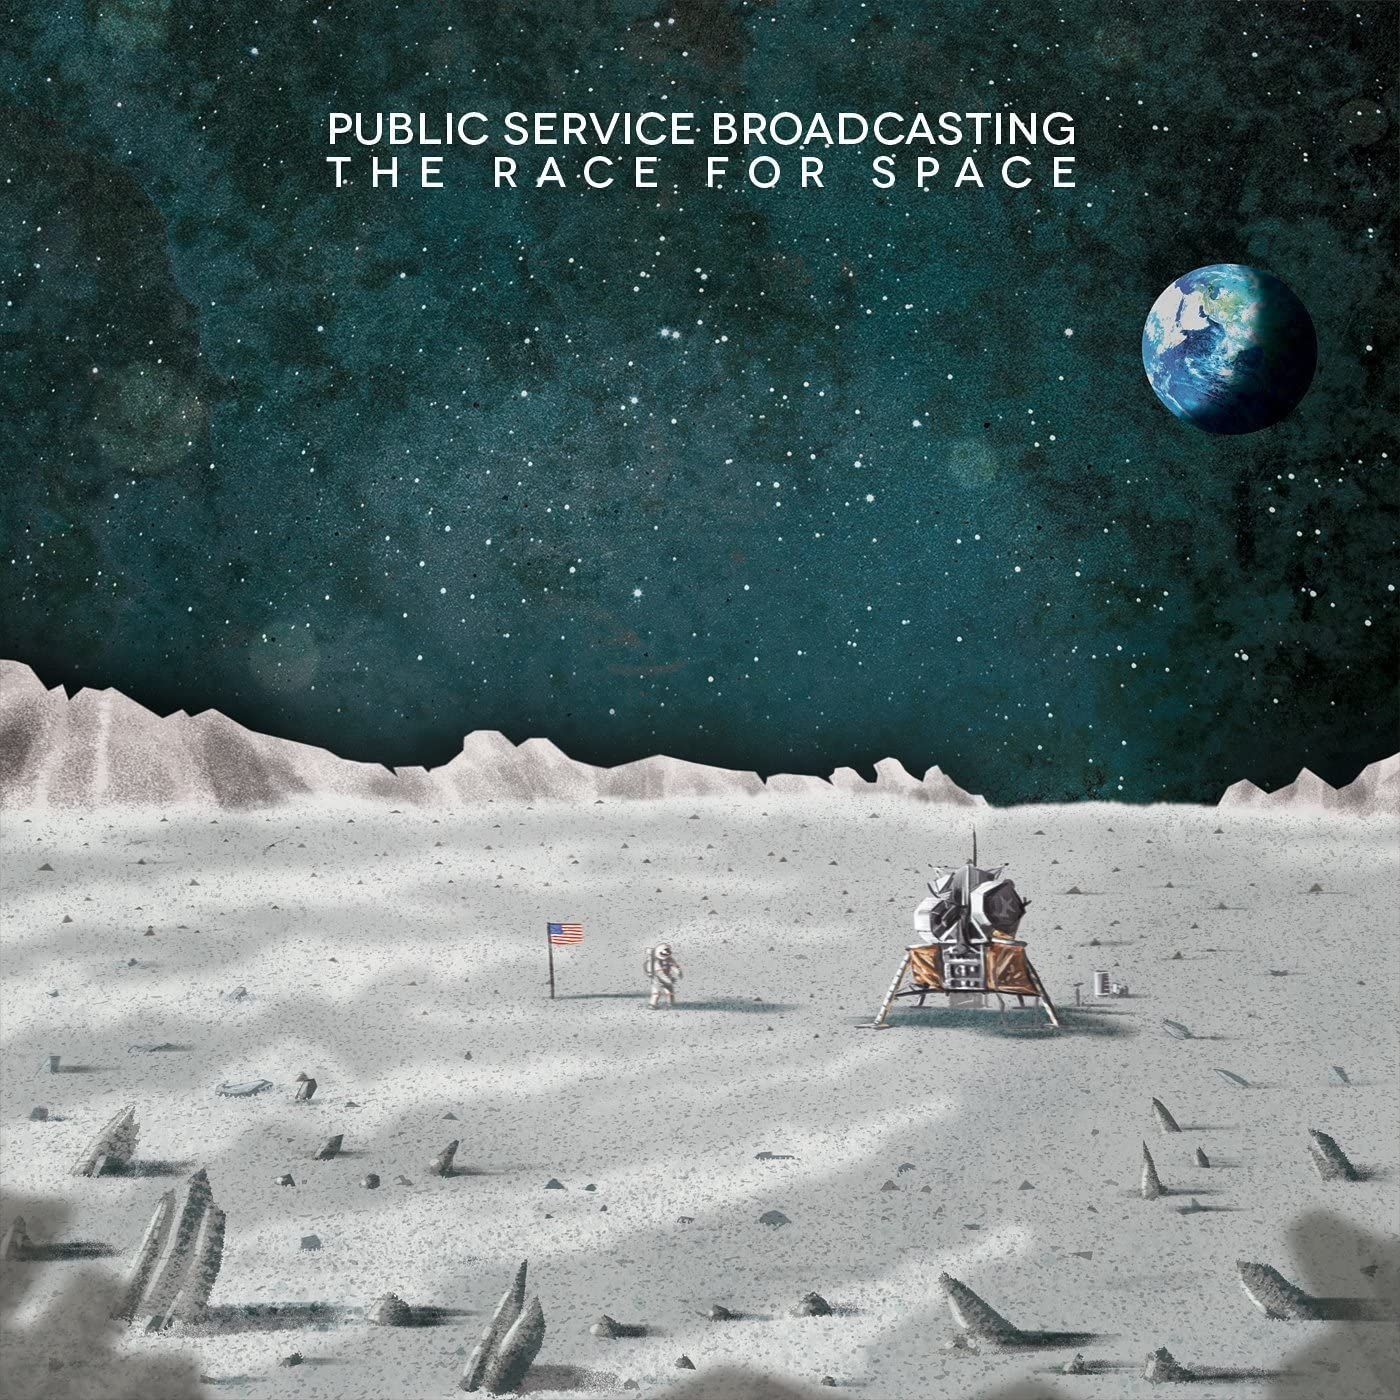 The Race For Space: Public Service Broadcasting with Luke Winch